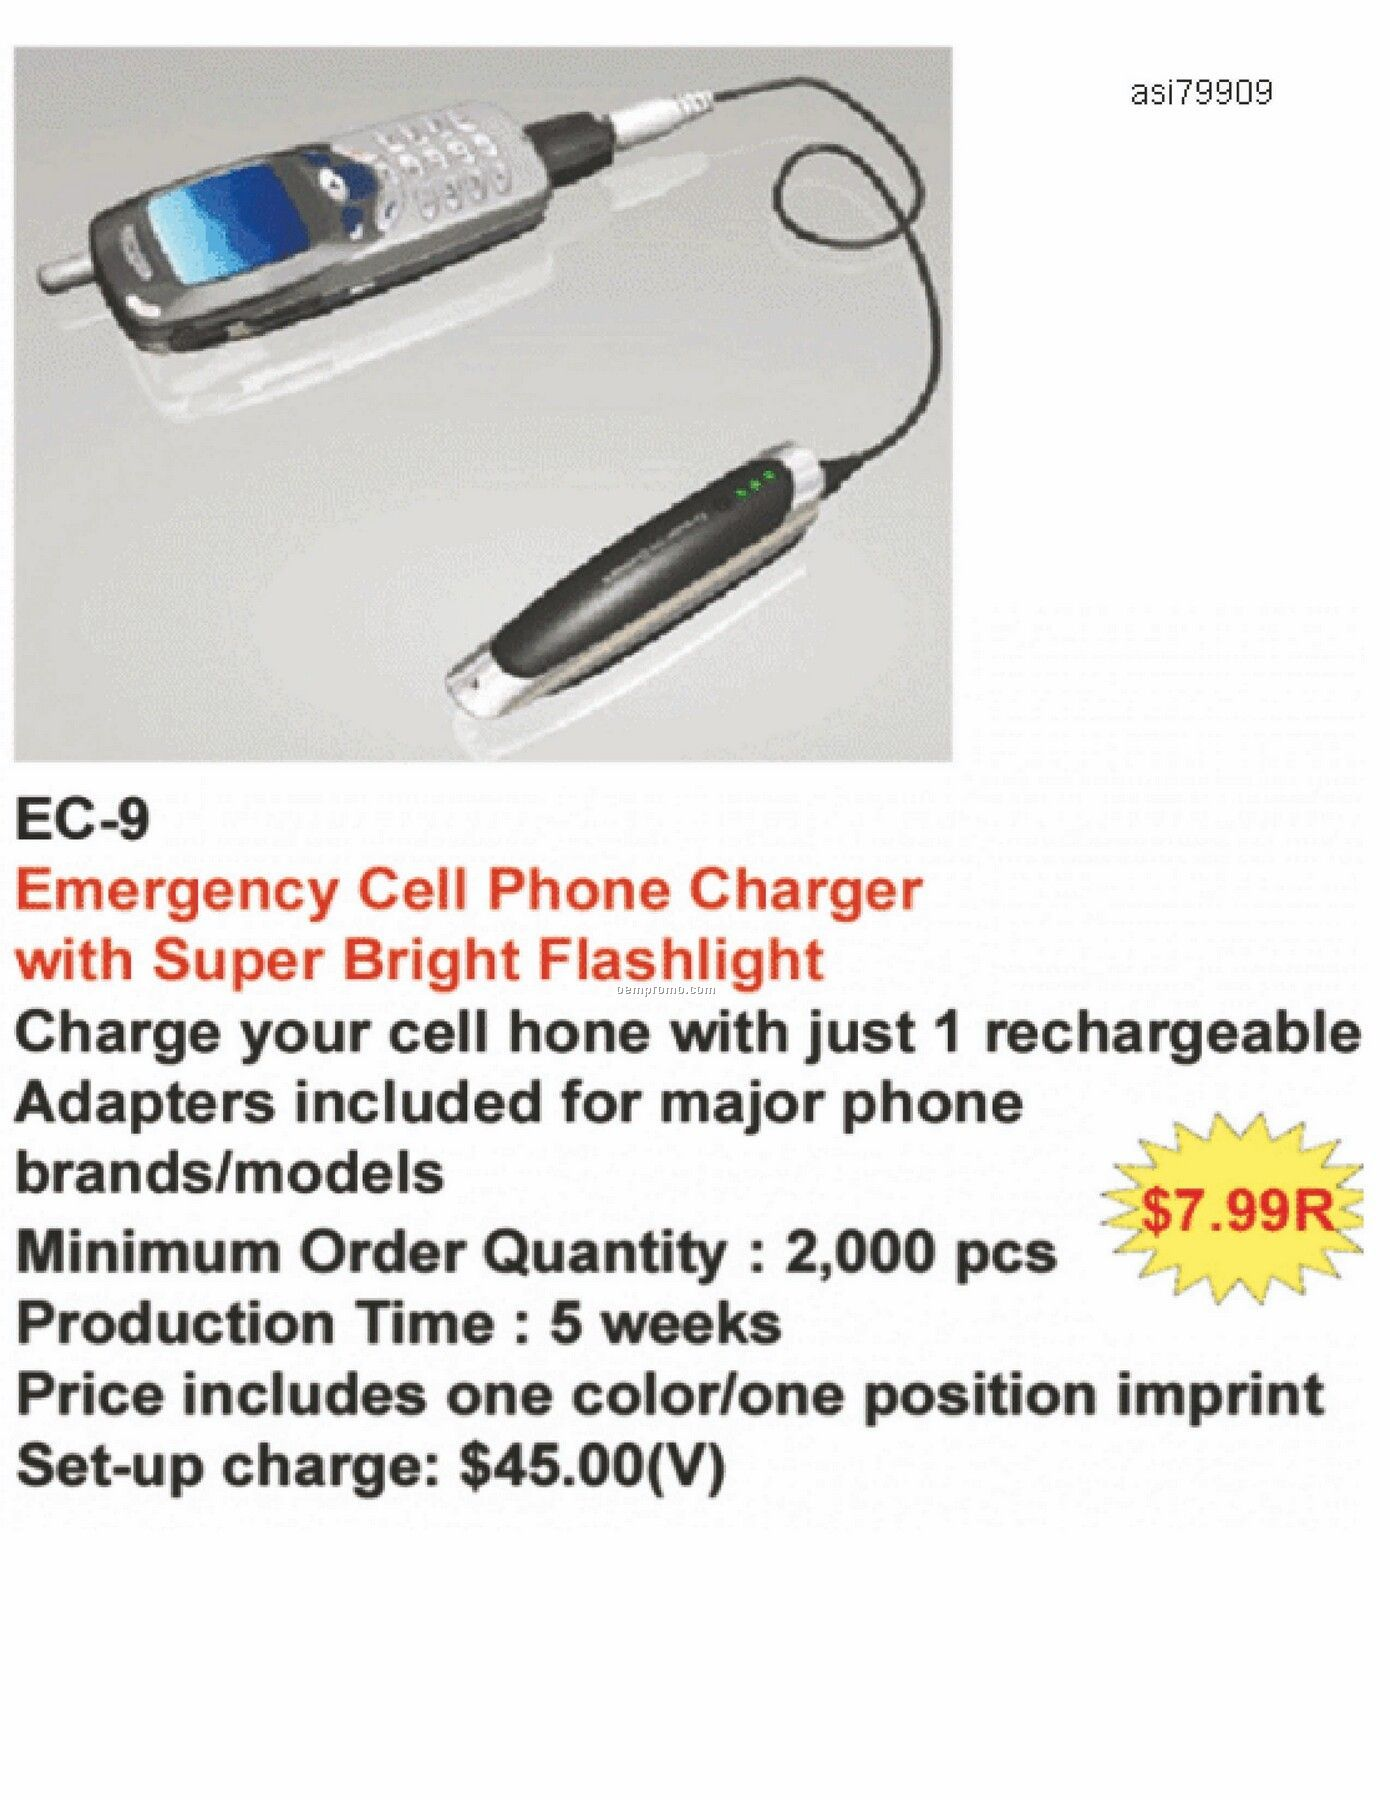 Emergency Cell Phone Charger / Flashlight (Adapter Tips Included)